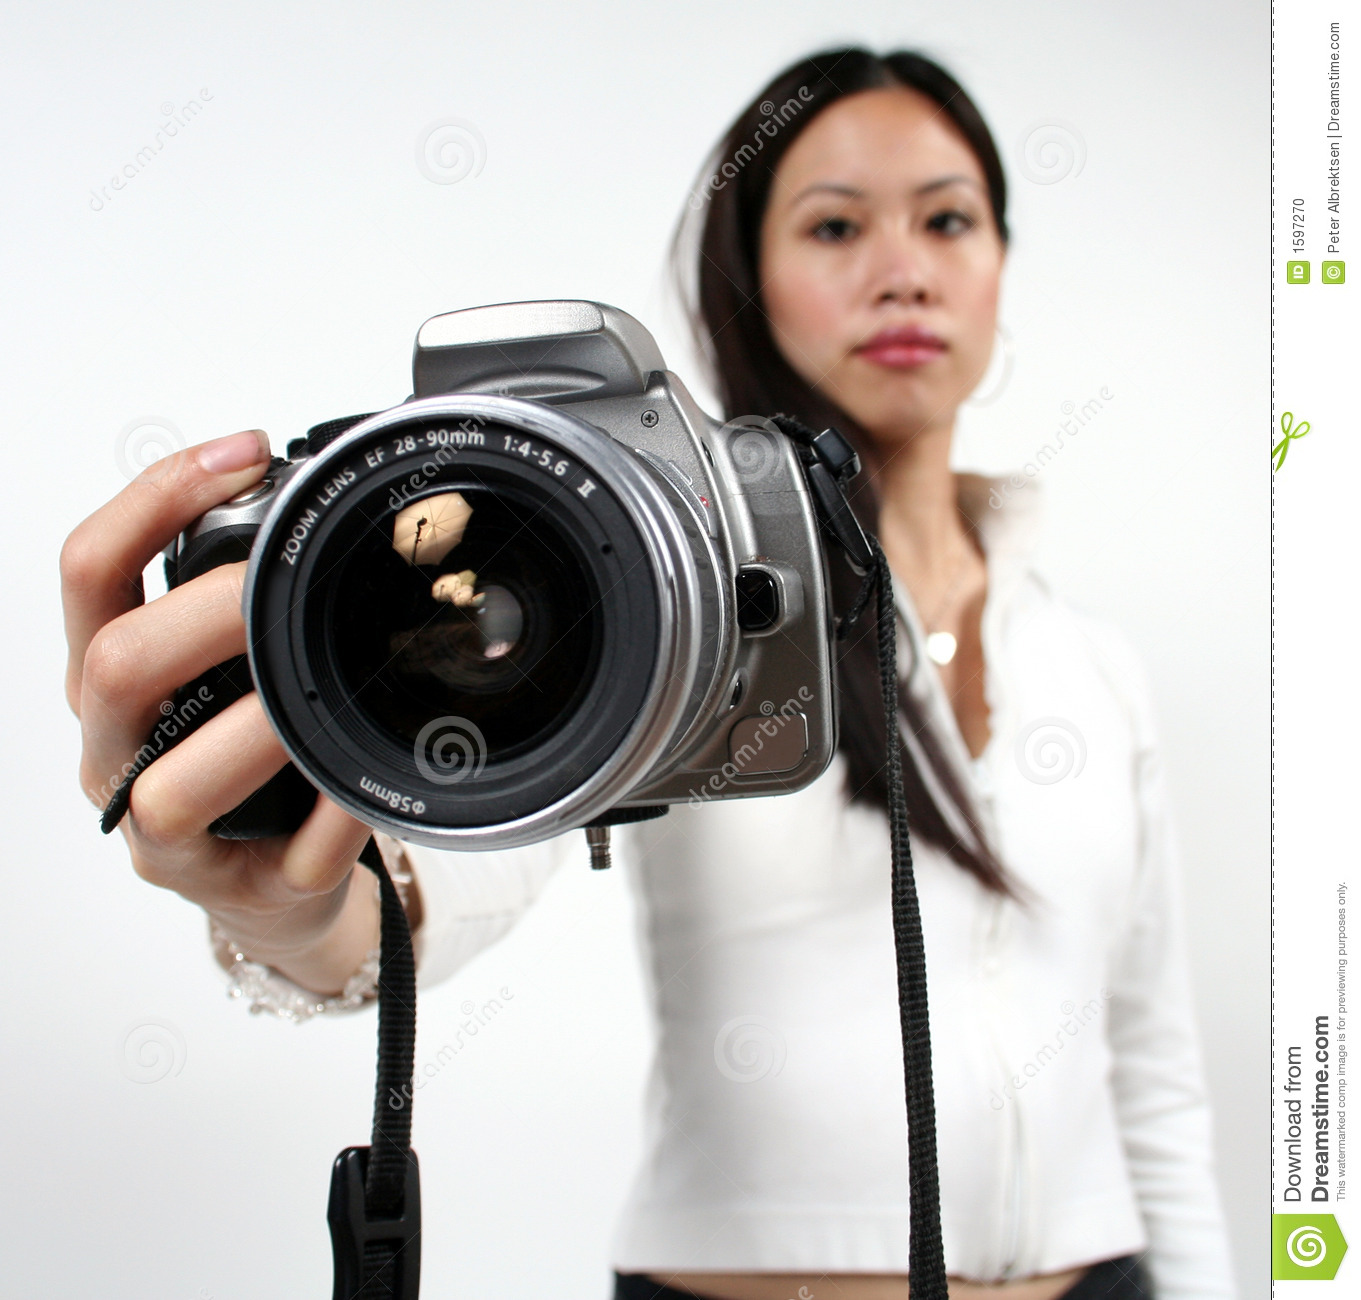 Woman and camera stock photo. Image of collars, friendly ...